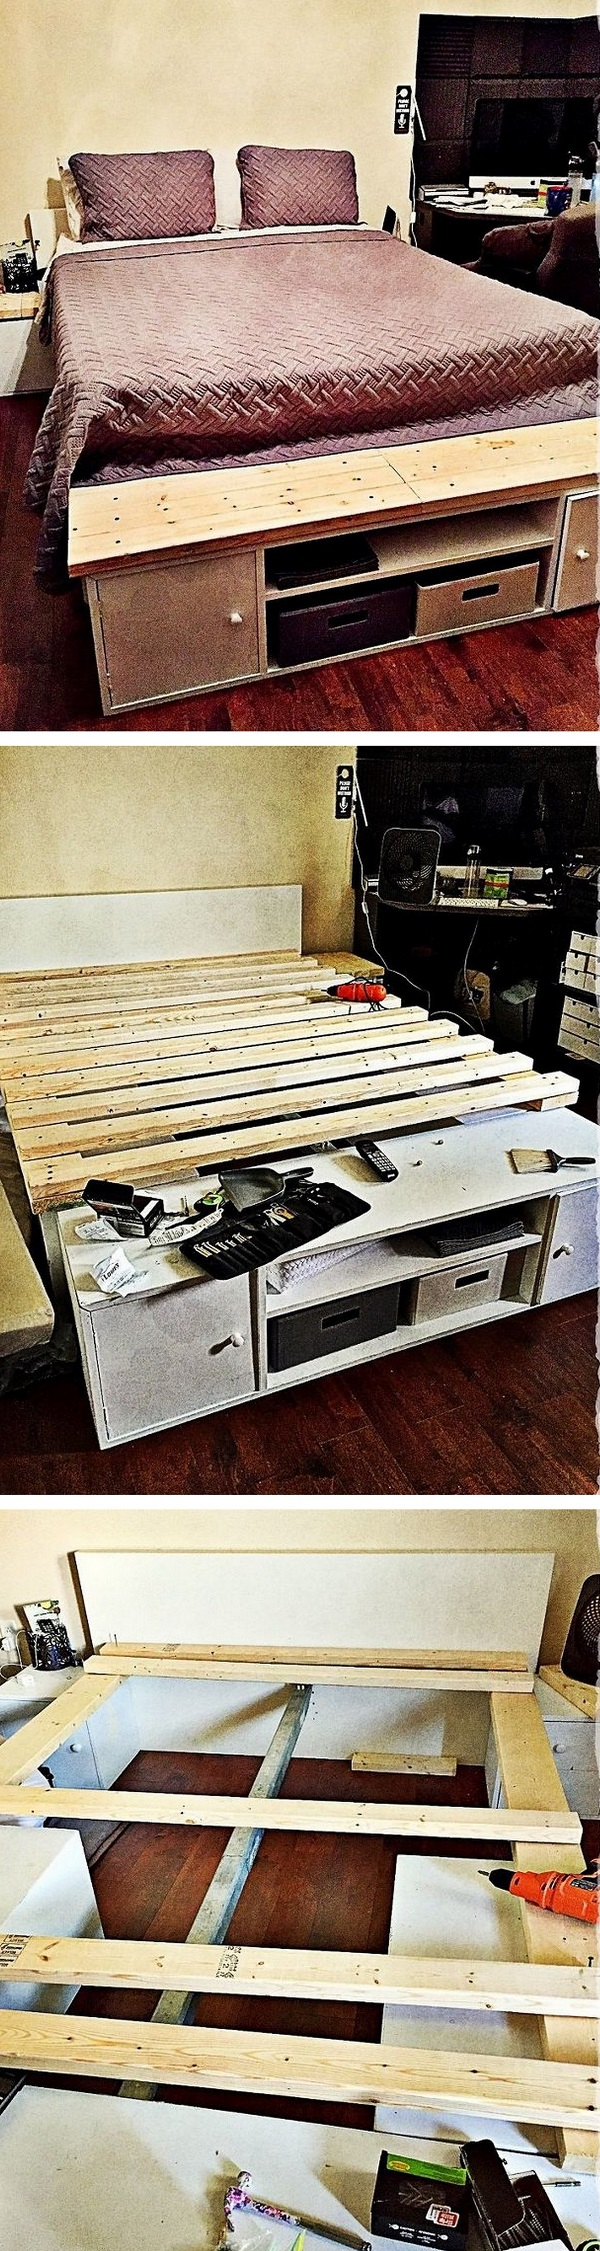 Check out the tutorial how to build a DIY Japanese style storage bed